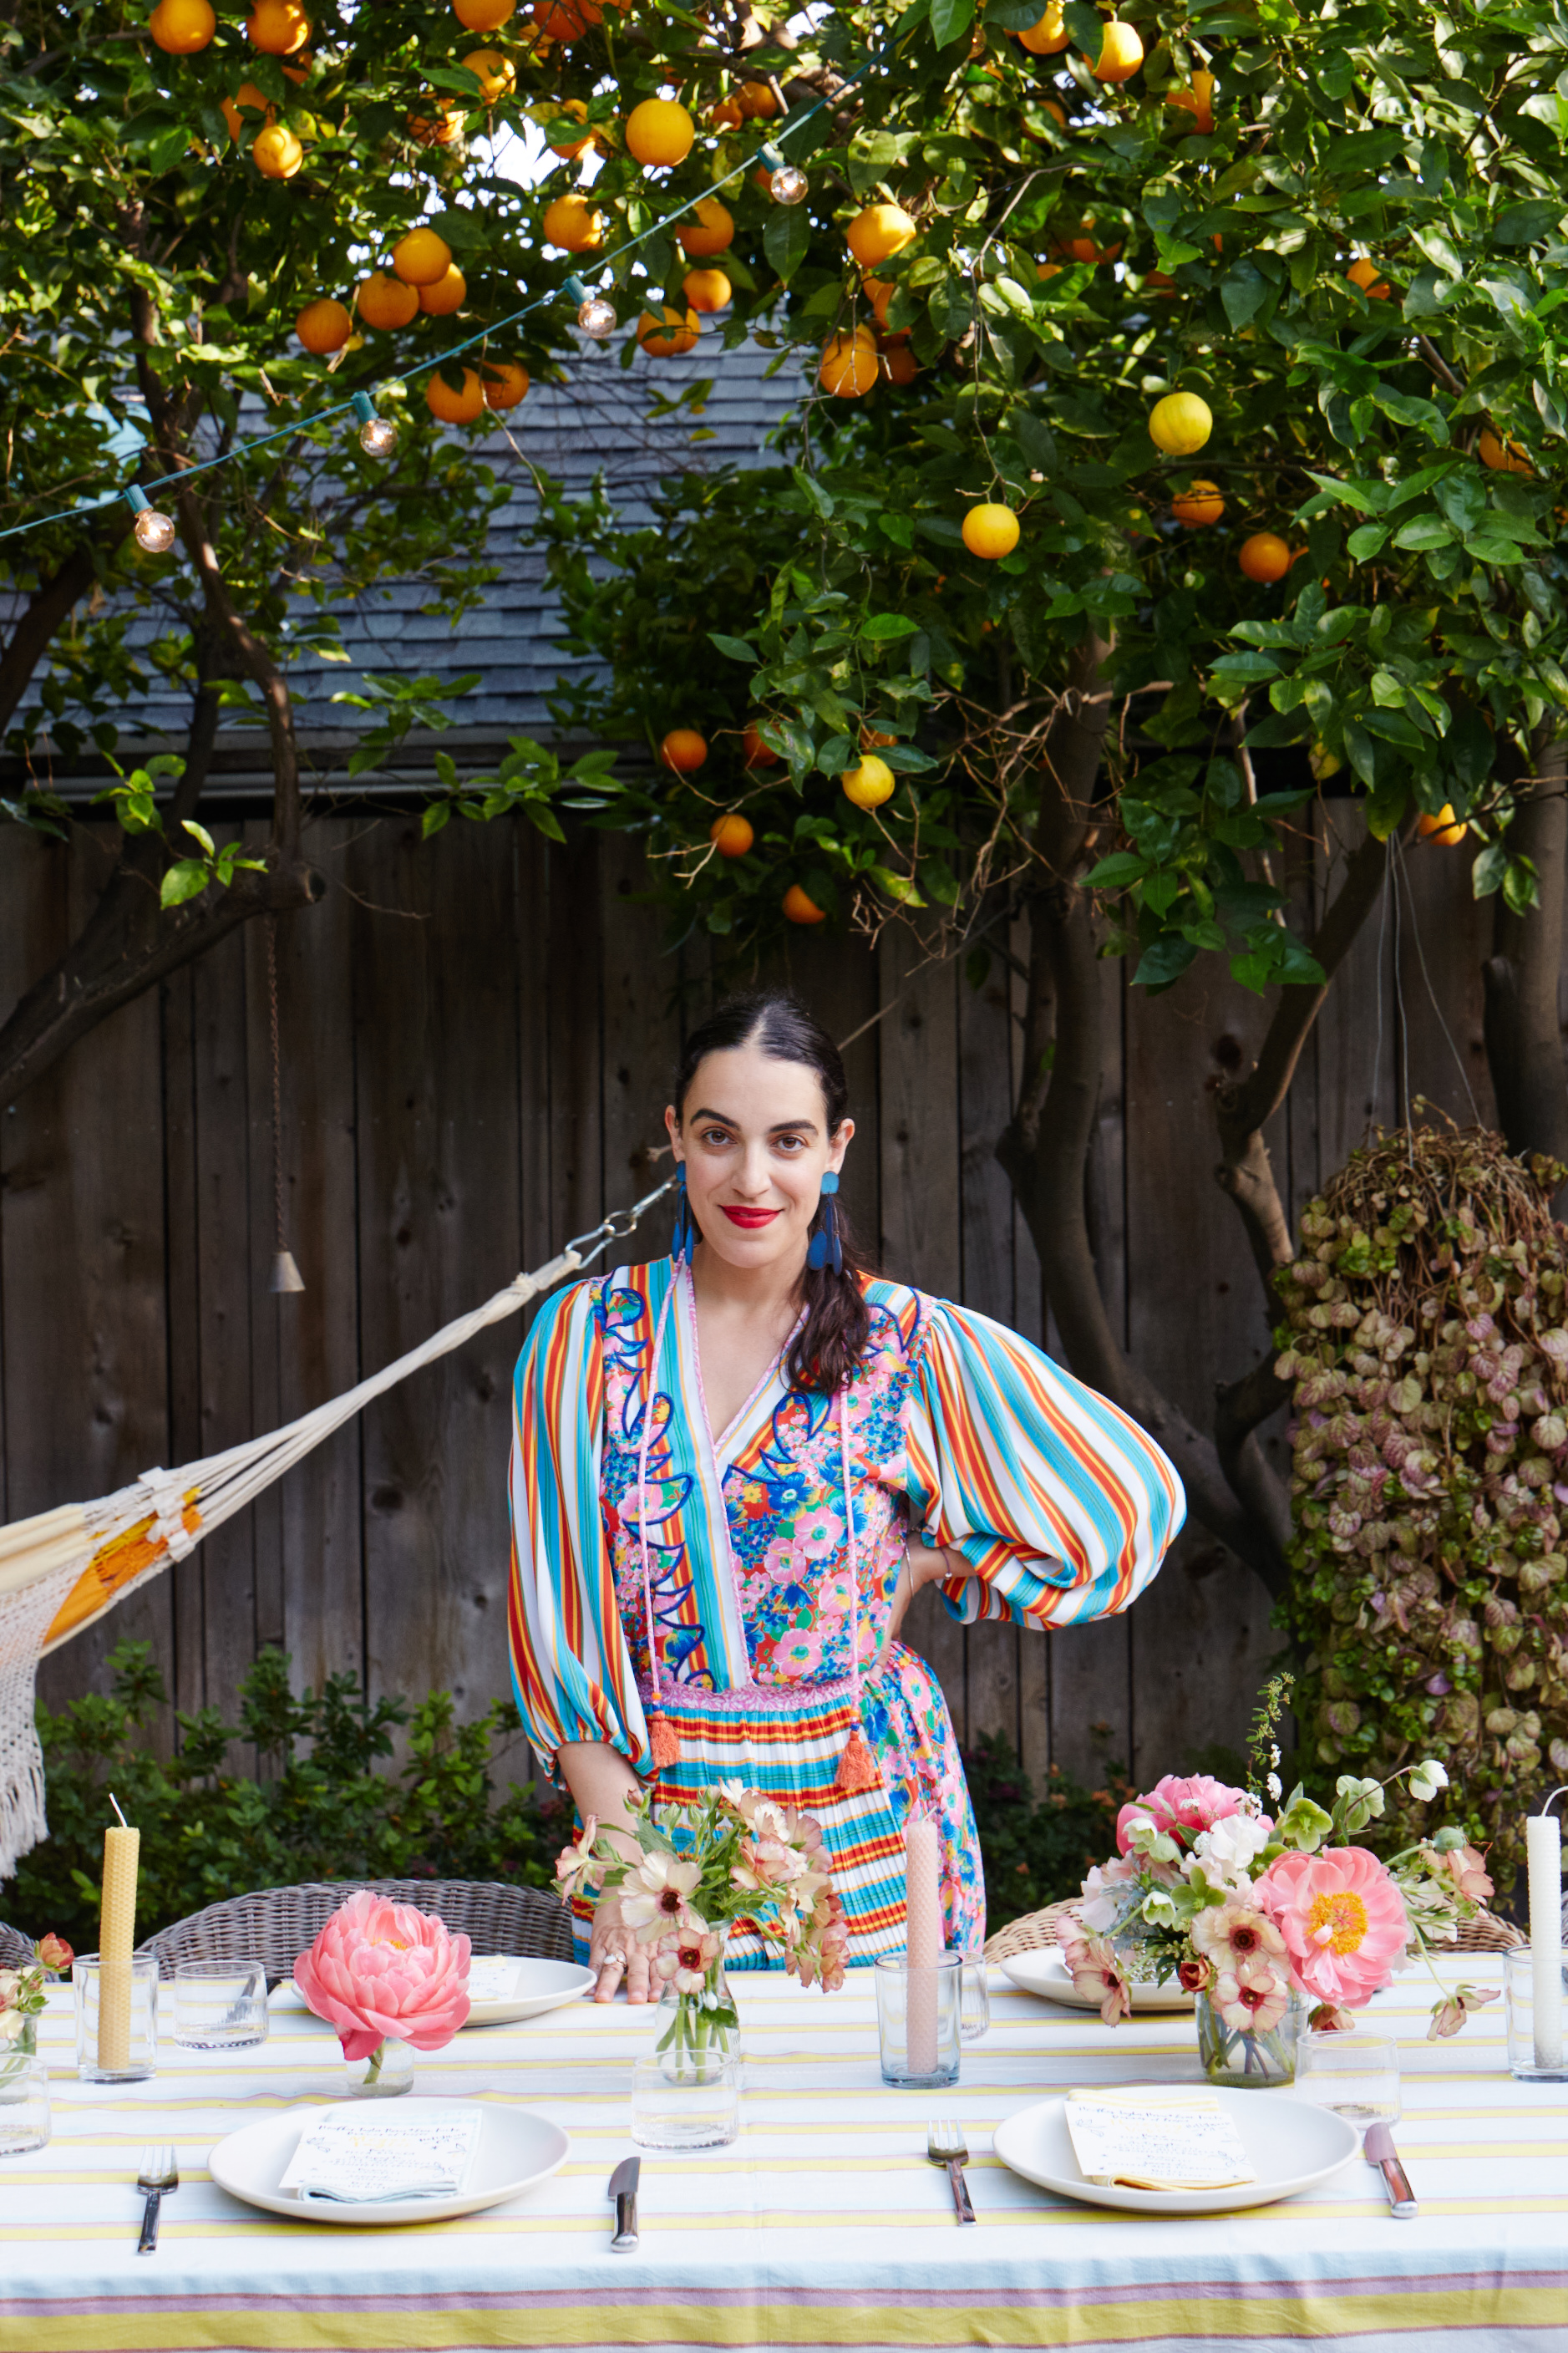 LA designer Heather Taylor at an outdoor table setting